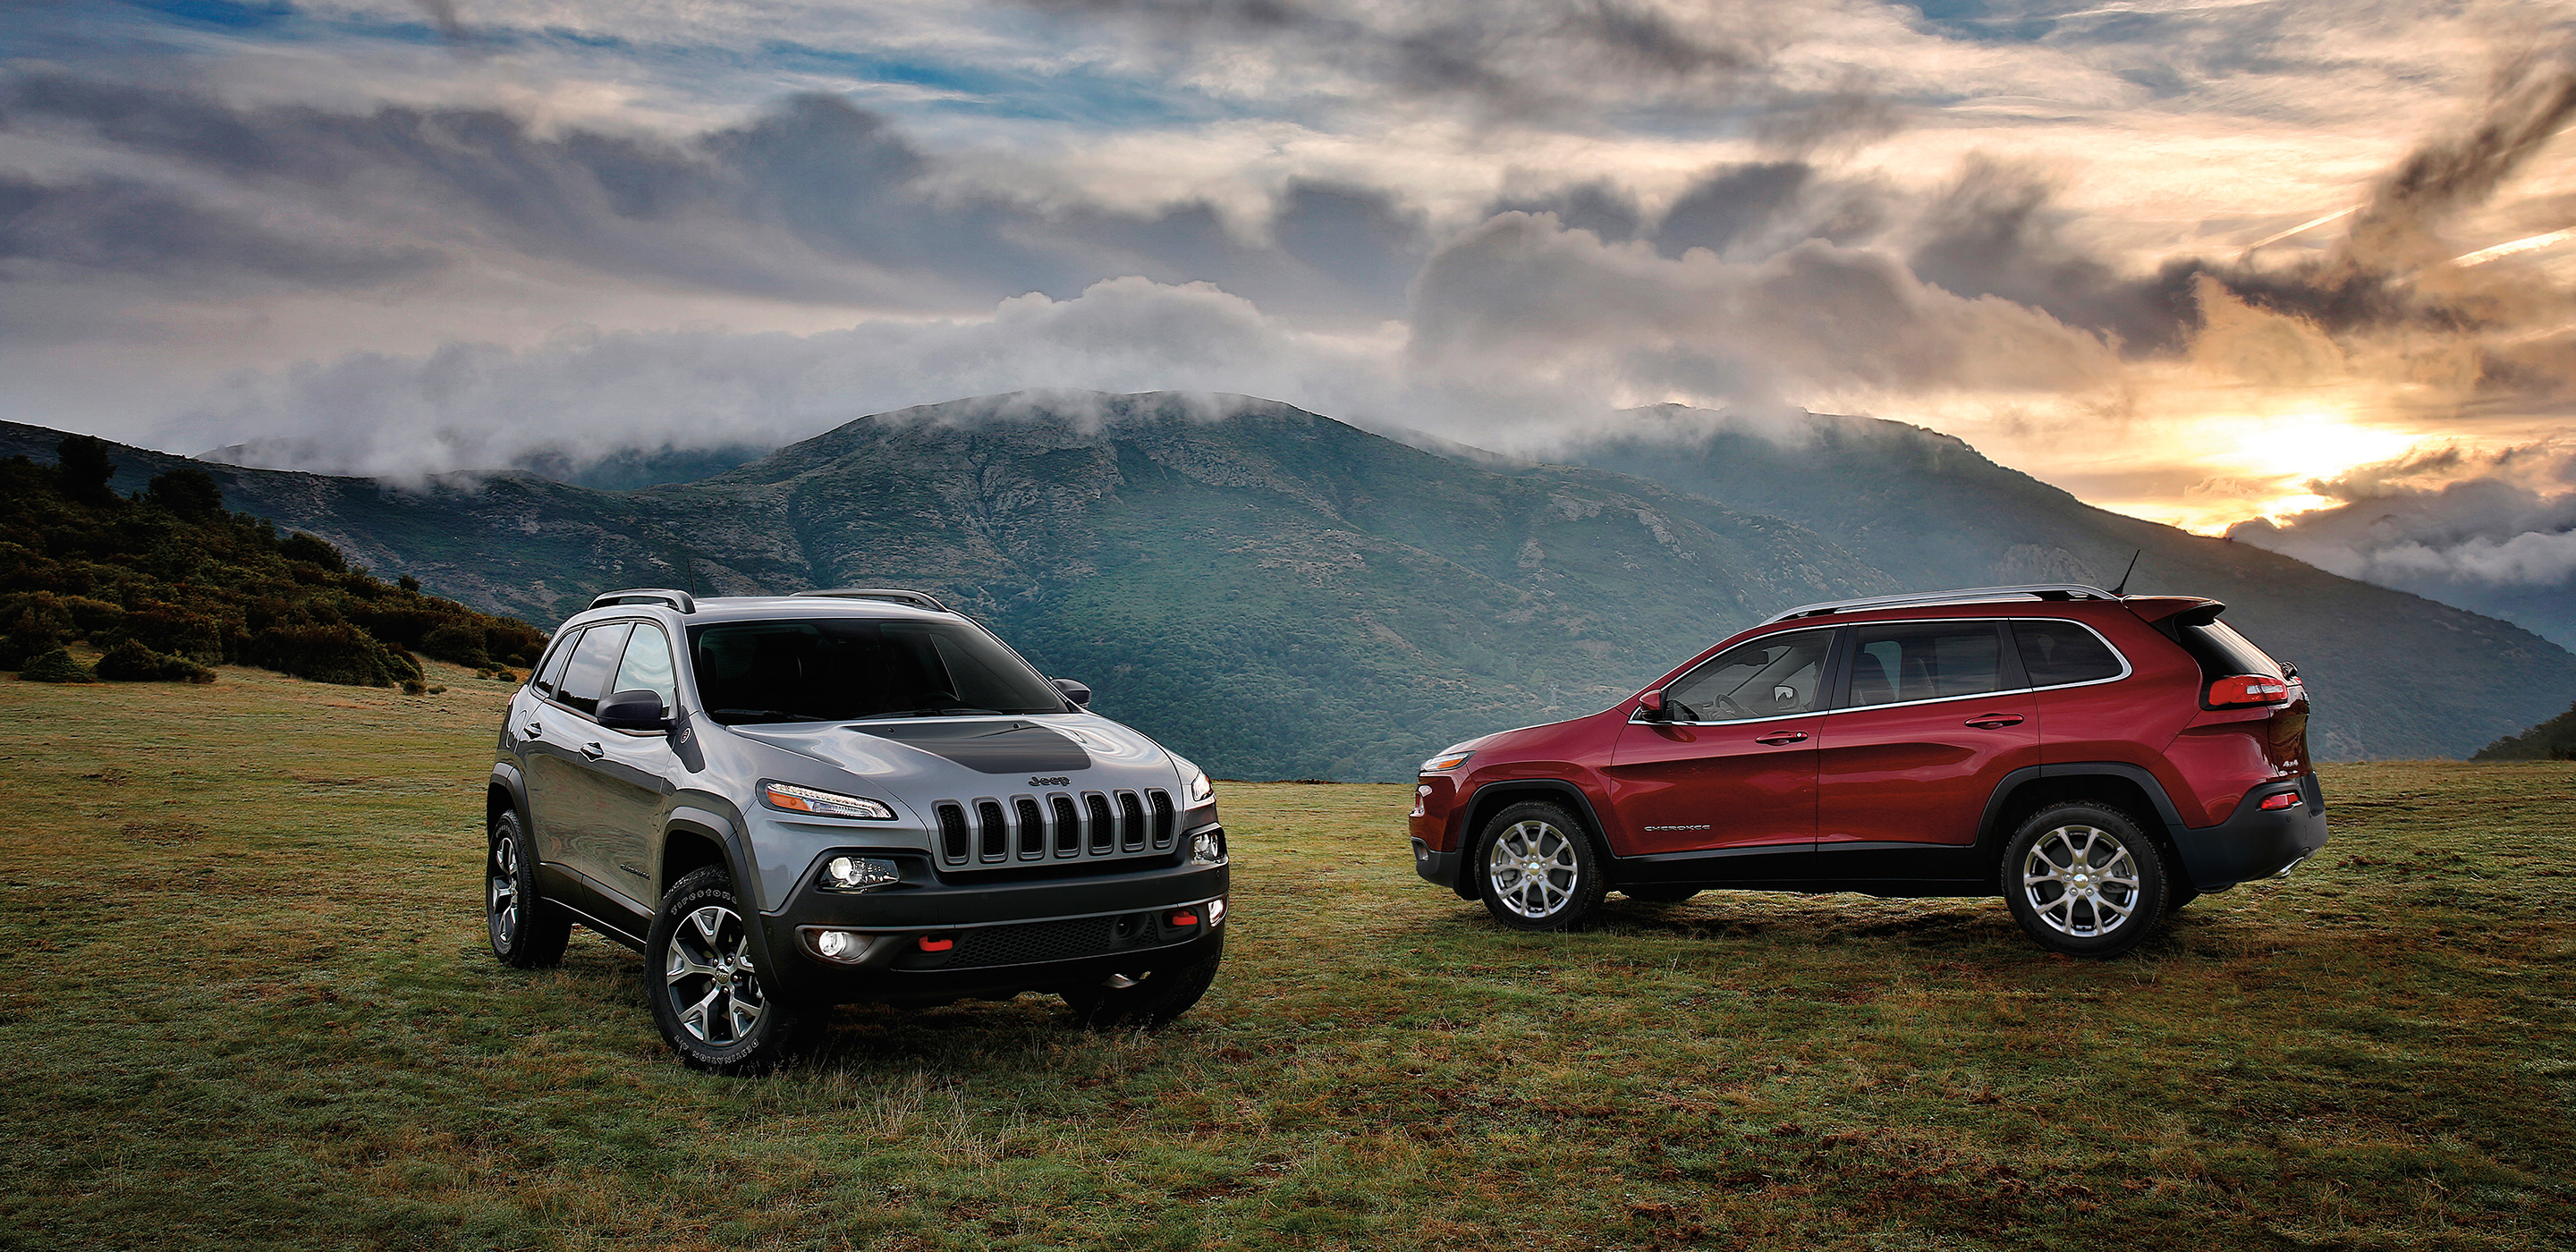 Jeep Cherokee Wallpaper Image Group 40 2880x1400